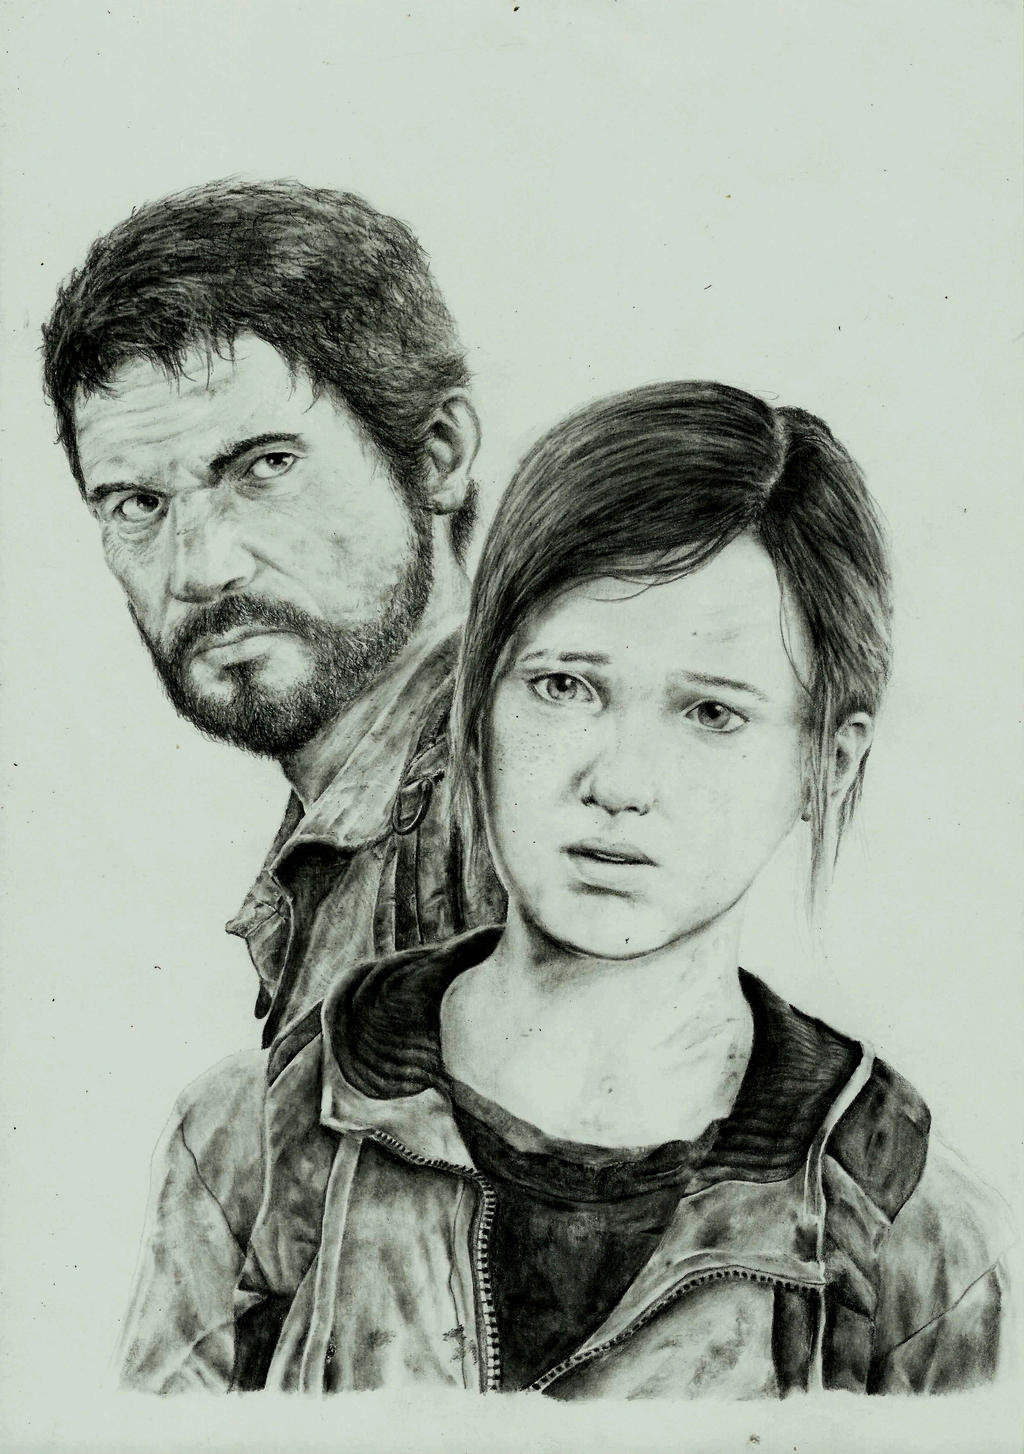 The Last Of Us - Daddy's girl by zakValkyrie